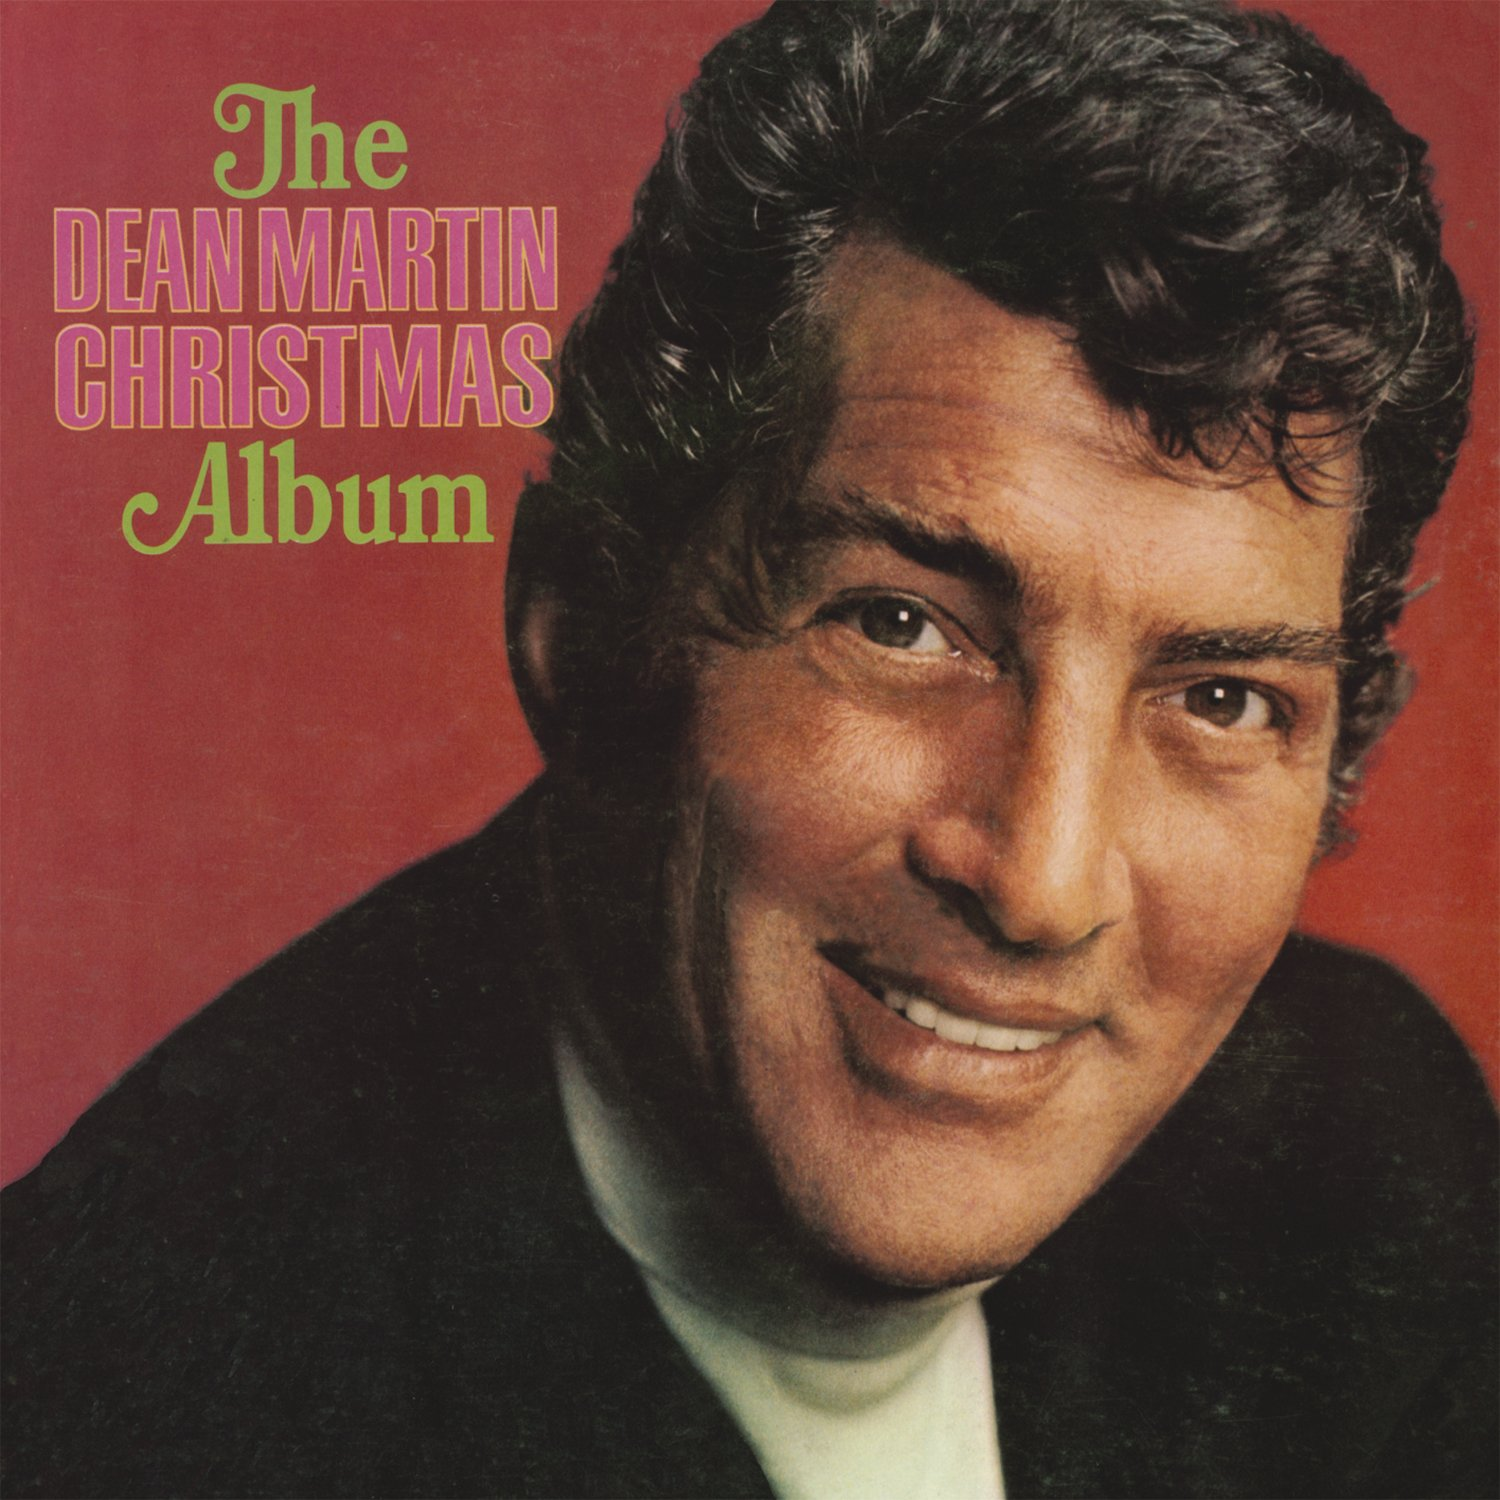 Dean Martin - The Dean Martin Christmas Album (CD)